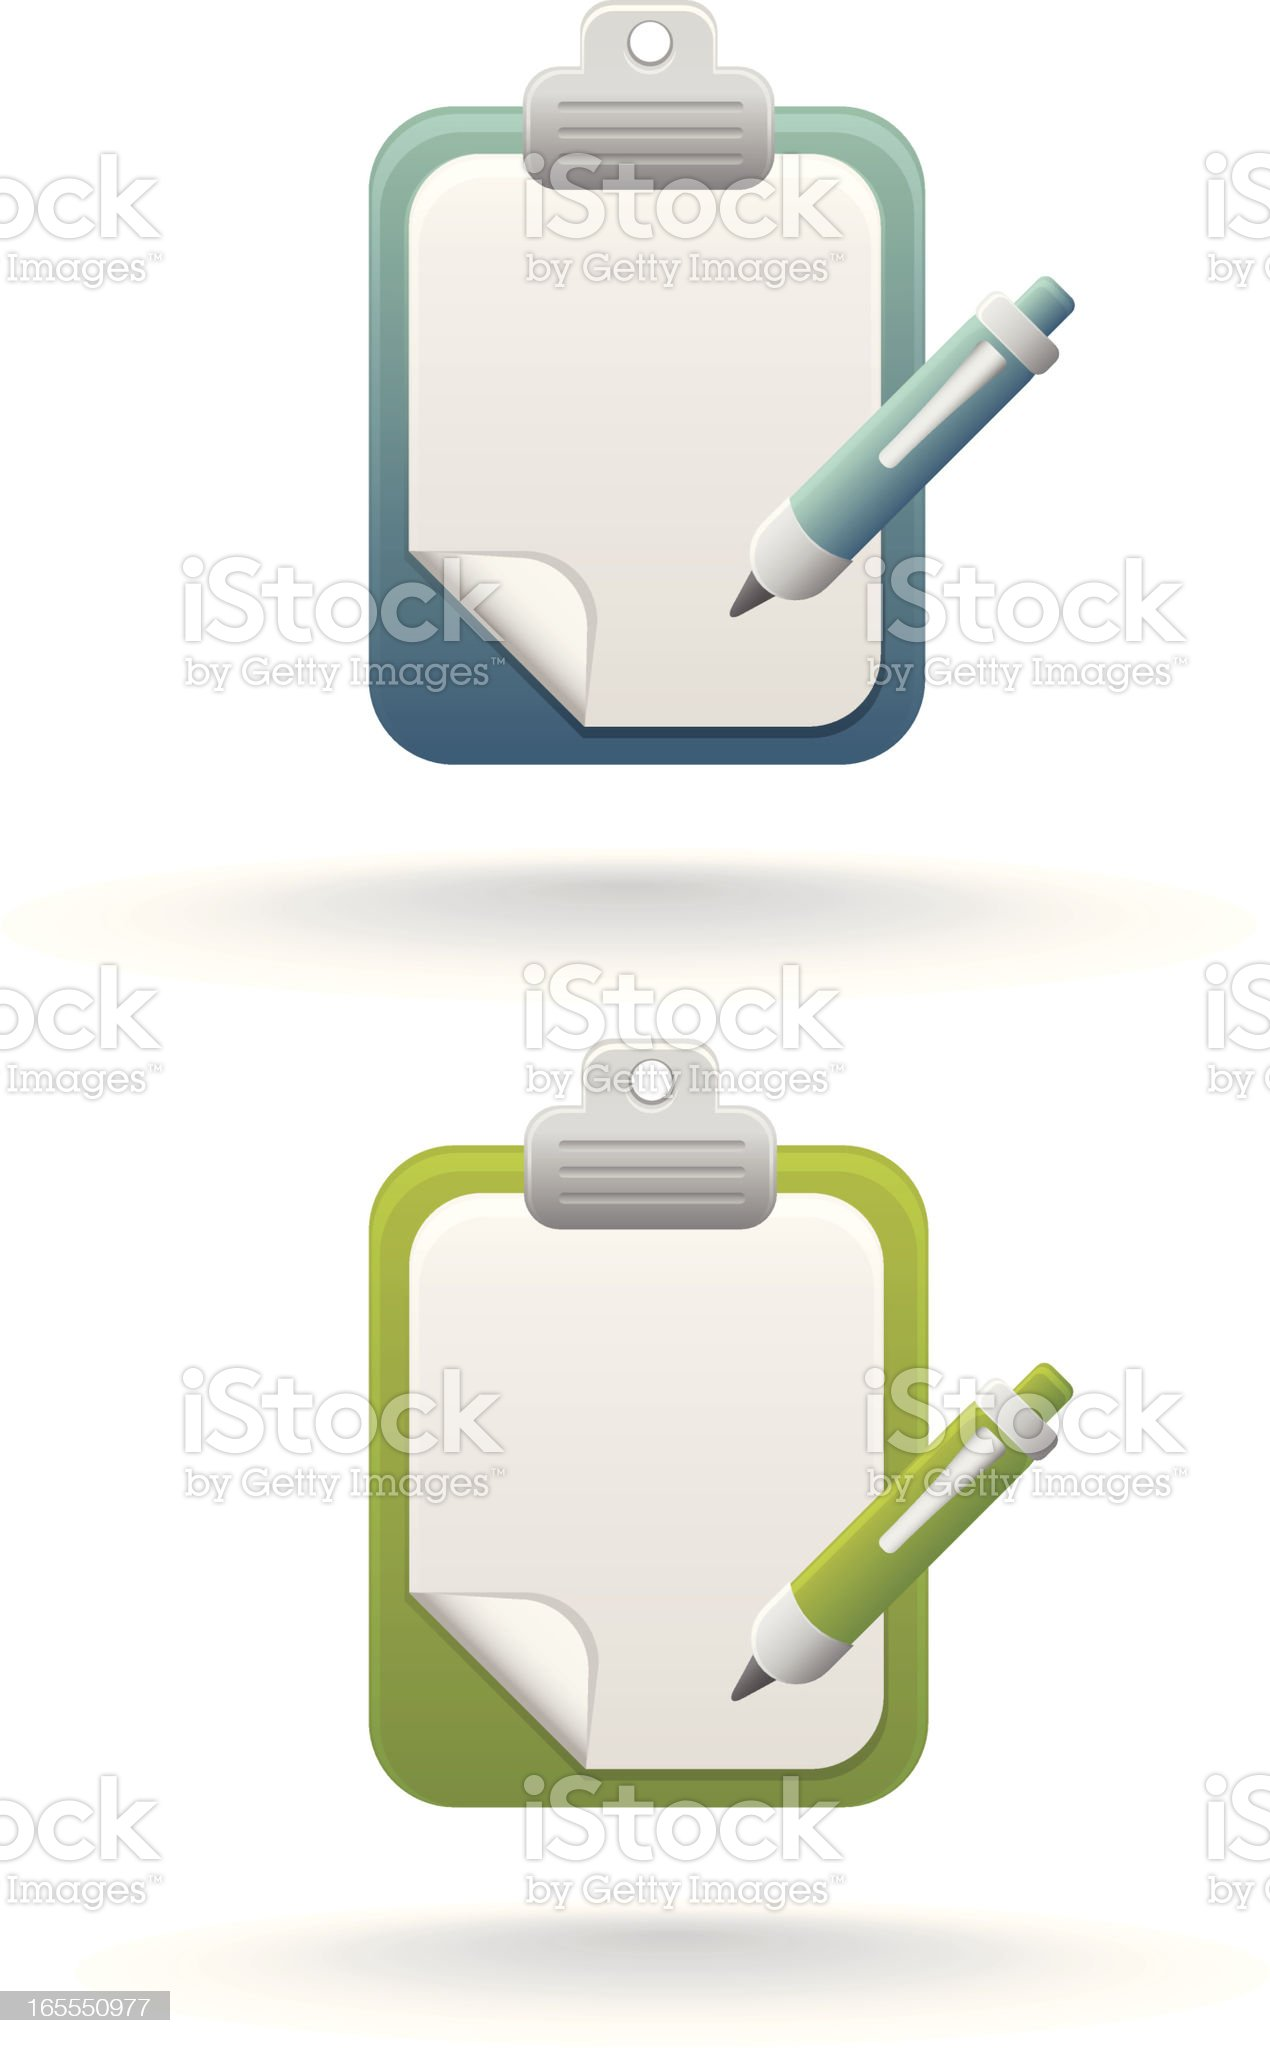 Lime and ice: form royalty-free stock vector art